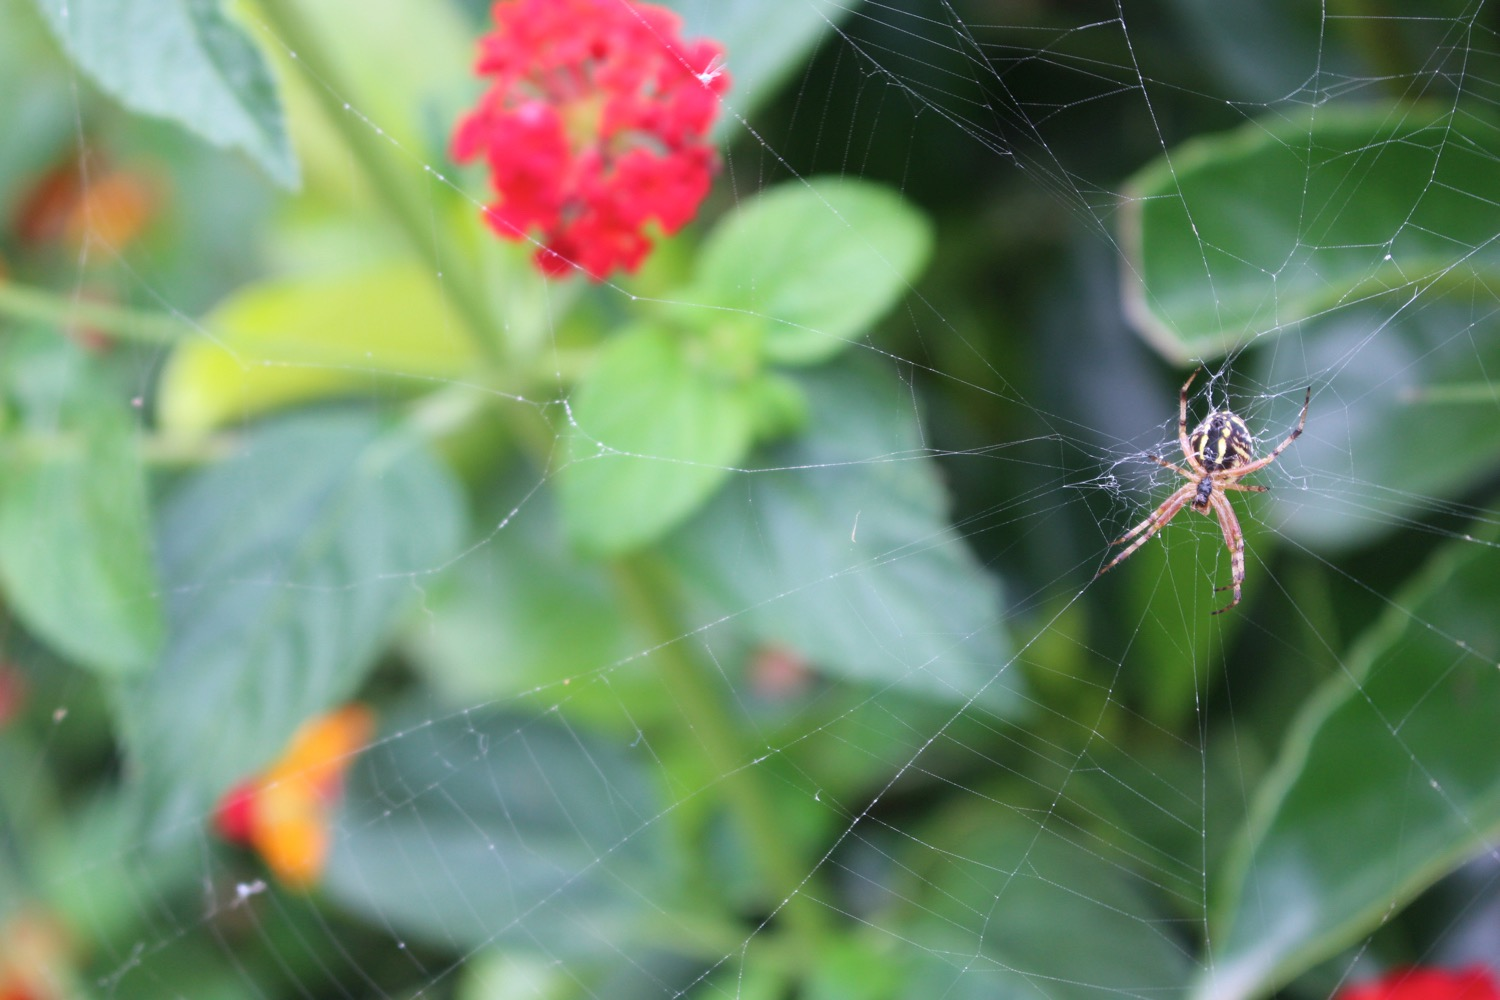 A spider building its web